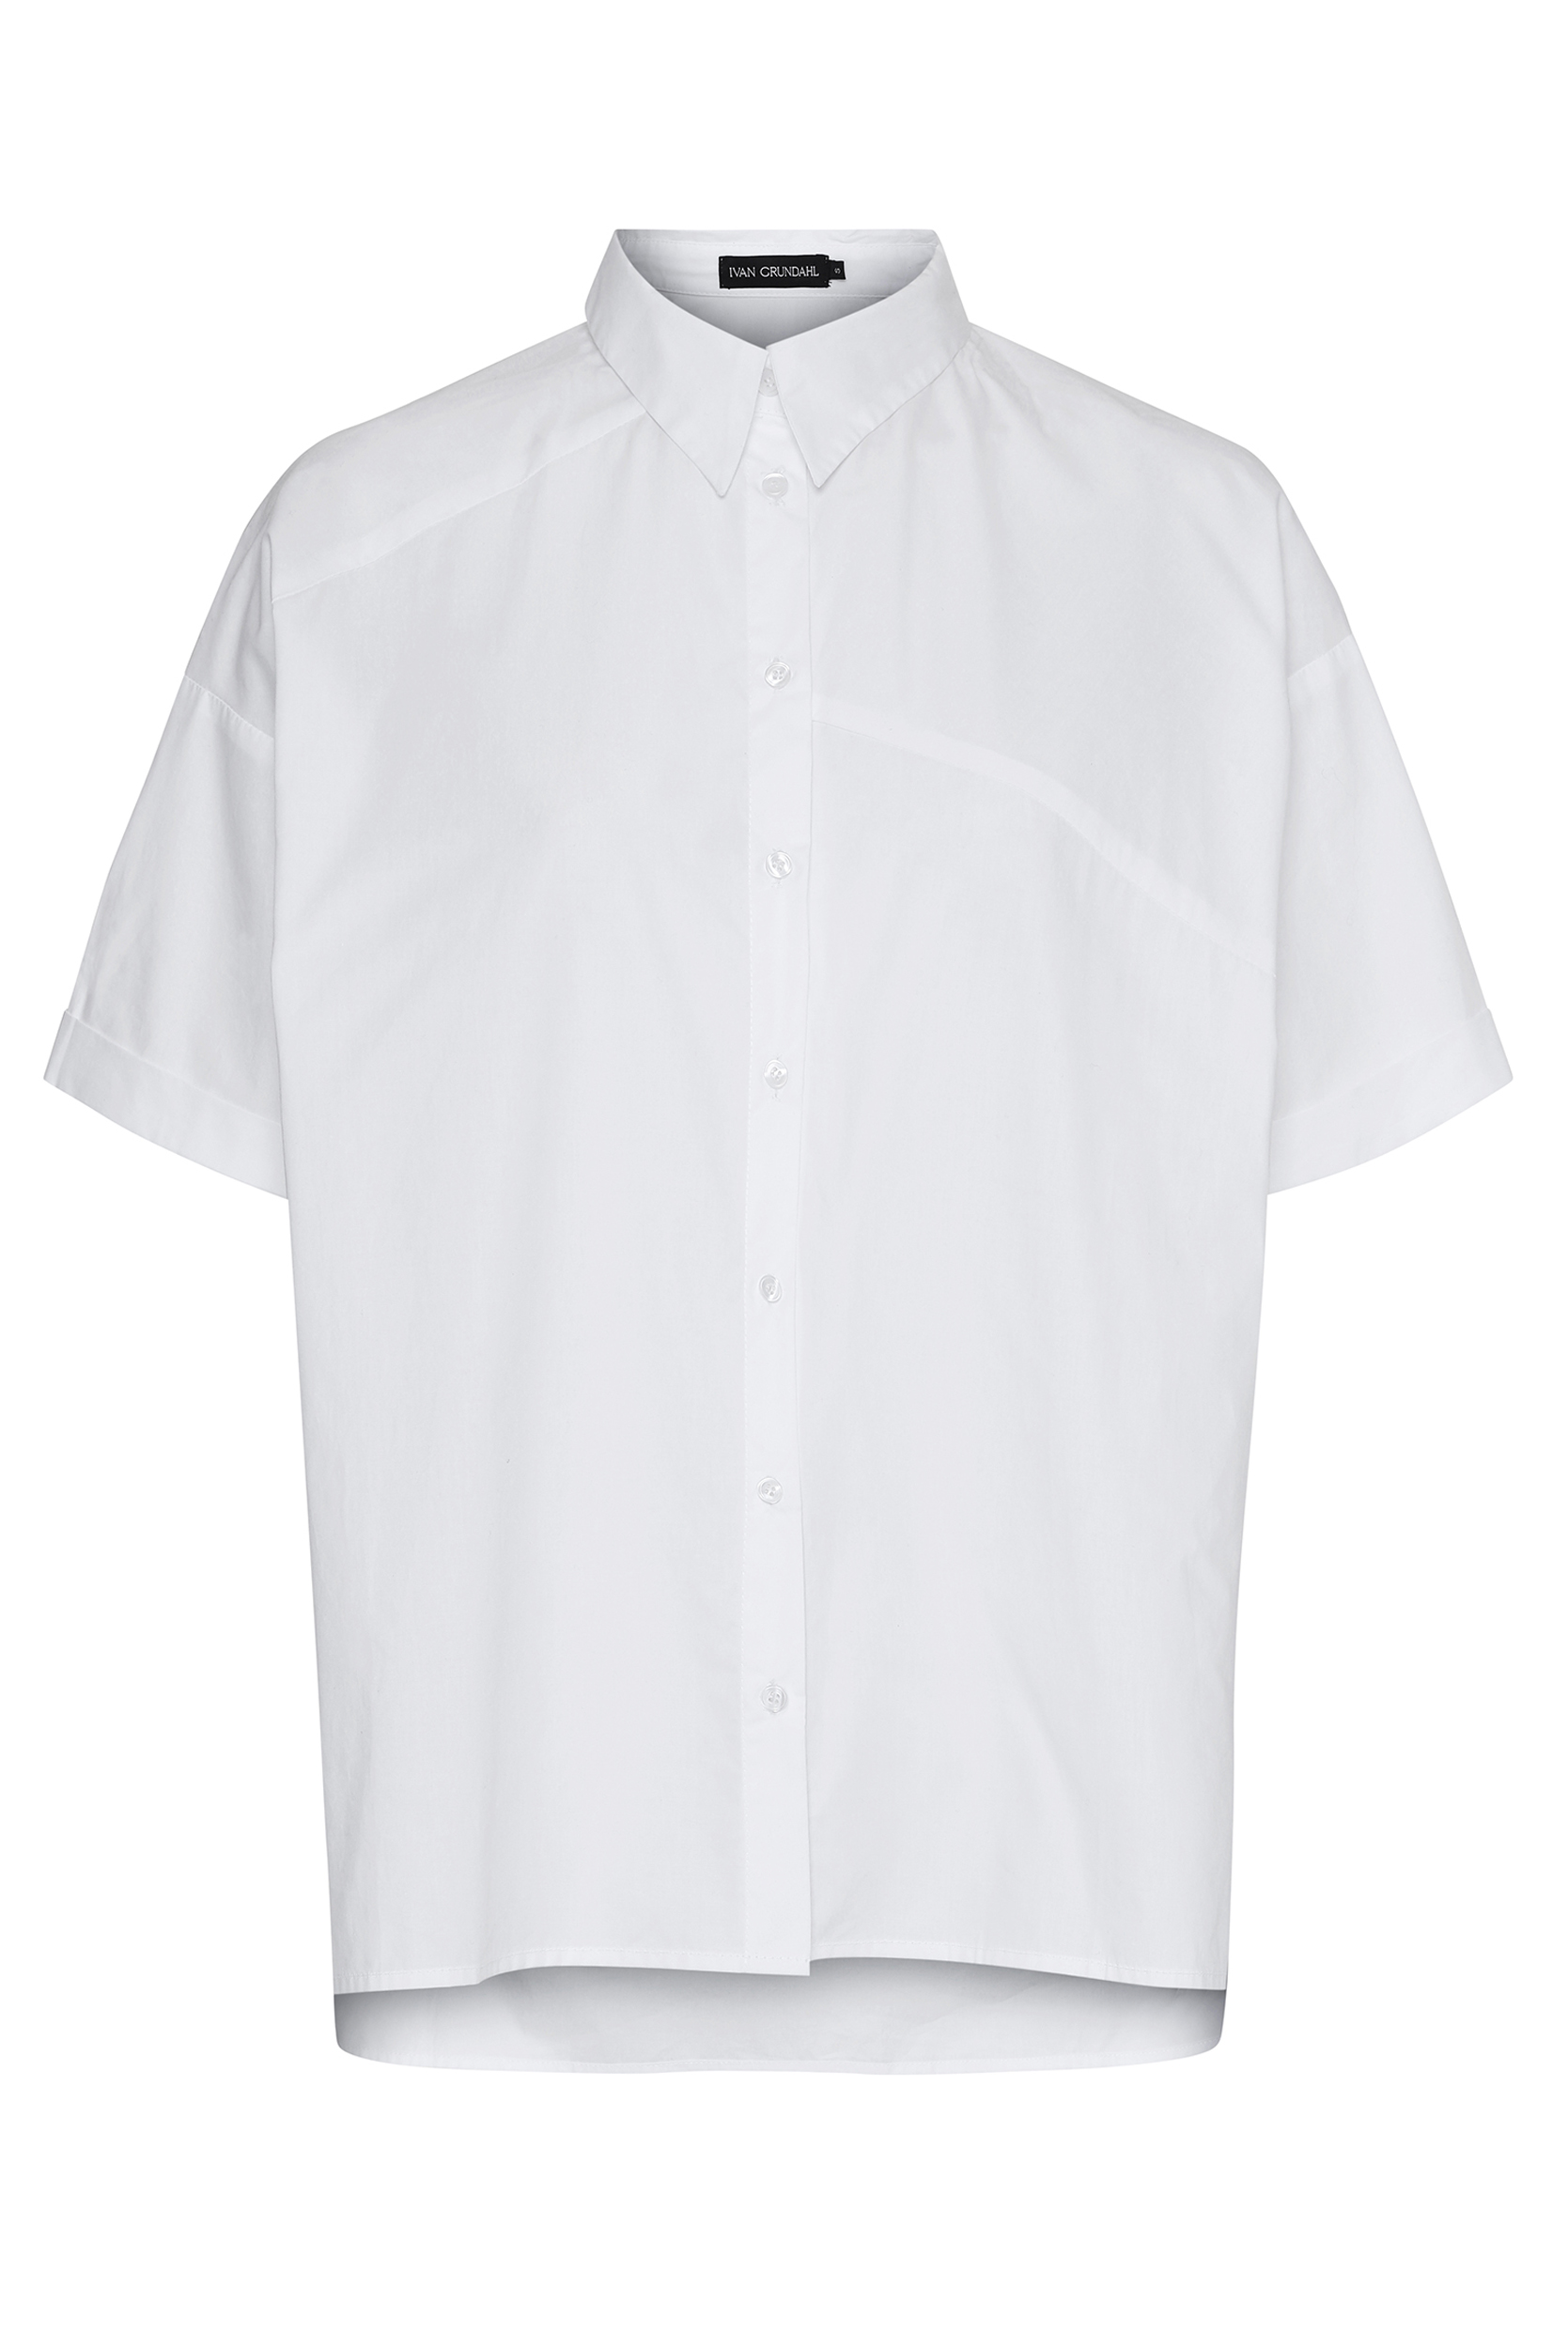 IVAN GRUNDAHL AVANTGARDE DASSIN COTTON SHORT SLEEVED SHIRT